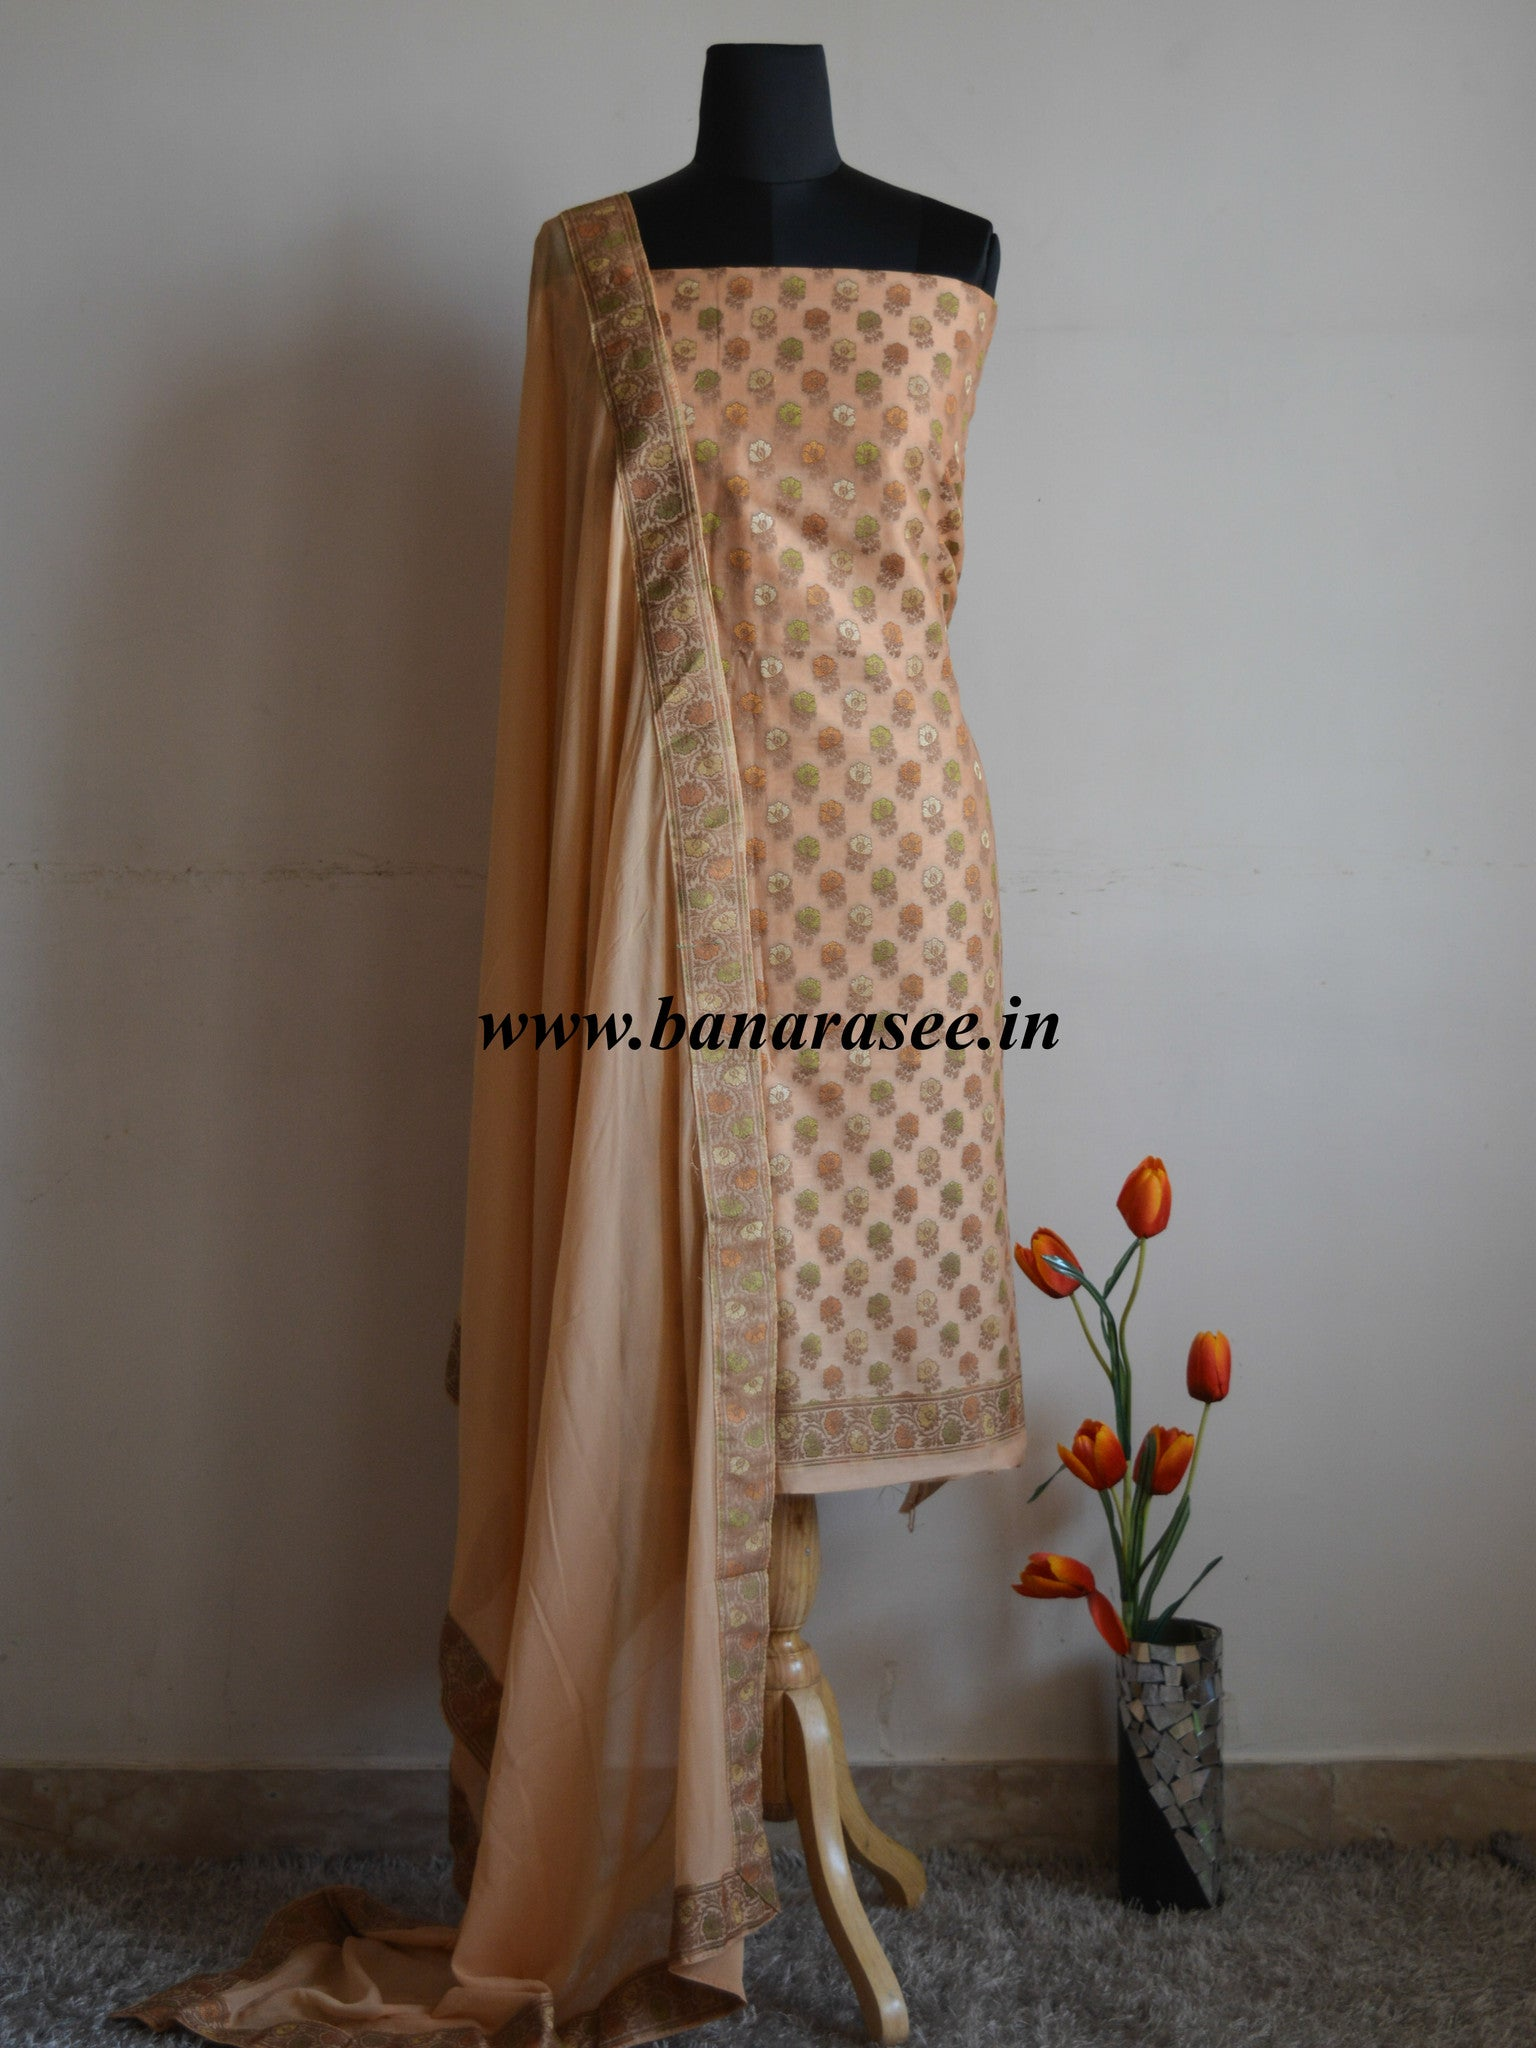 Banarasee/Banarasi Salwar Kameez Cotton Silk Woven Meena Buti Fabric-Light Brown